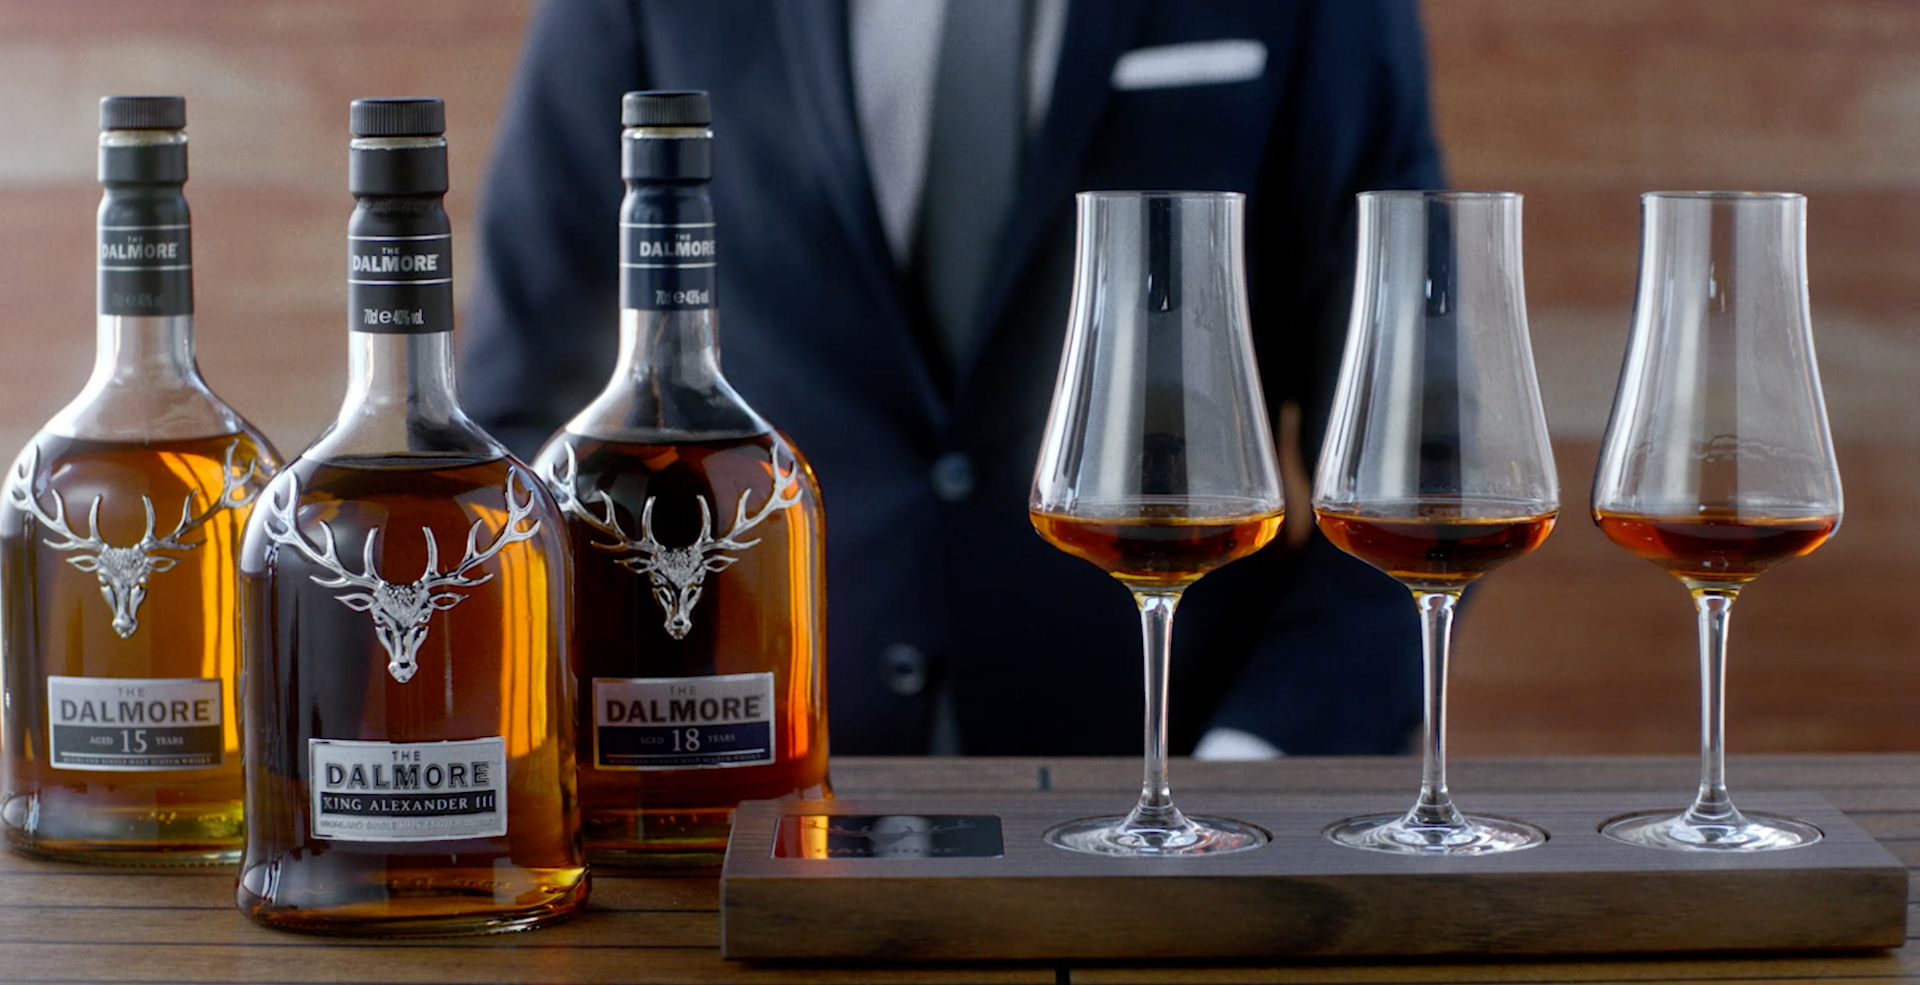 Dalmore Whisky & Chocolate Tasting